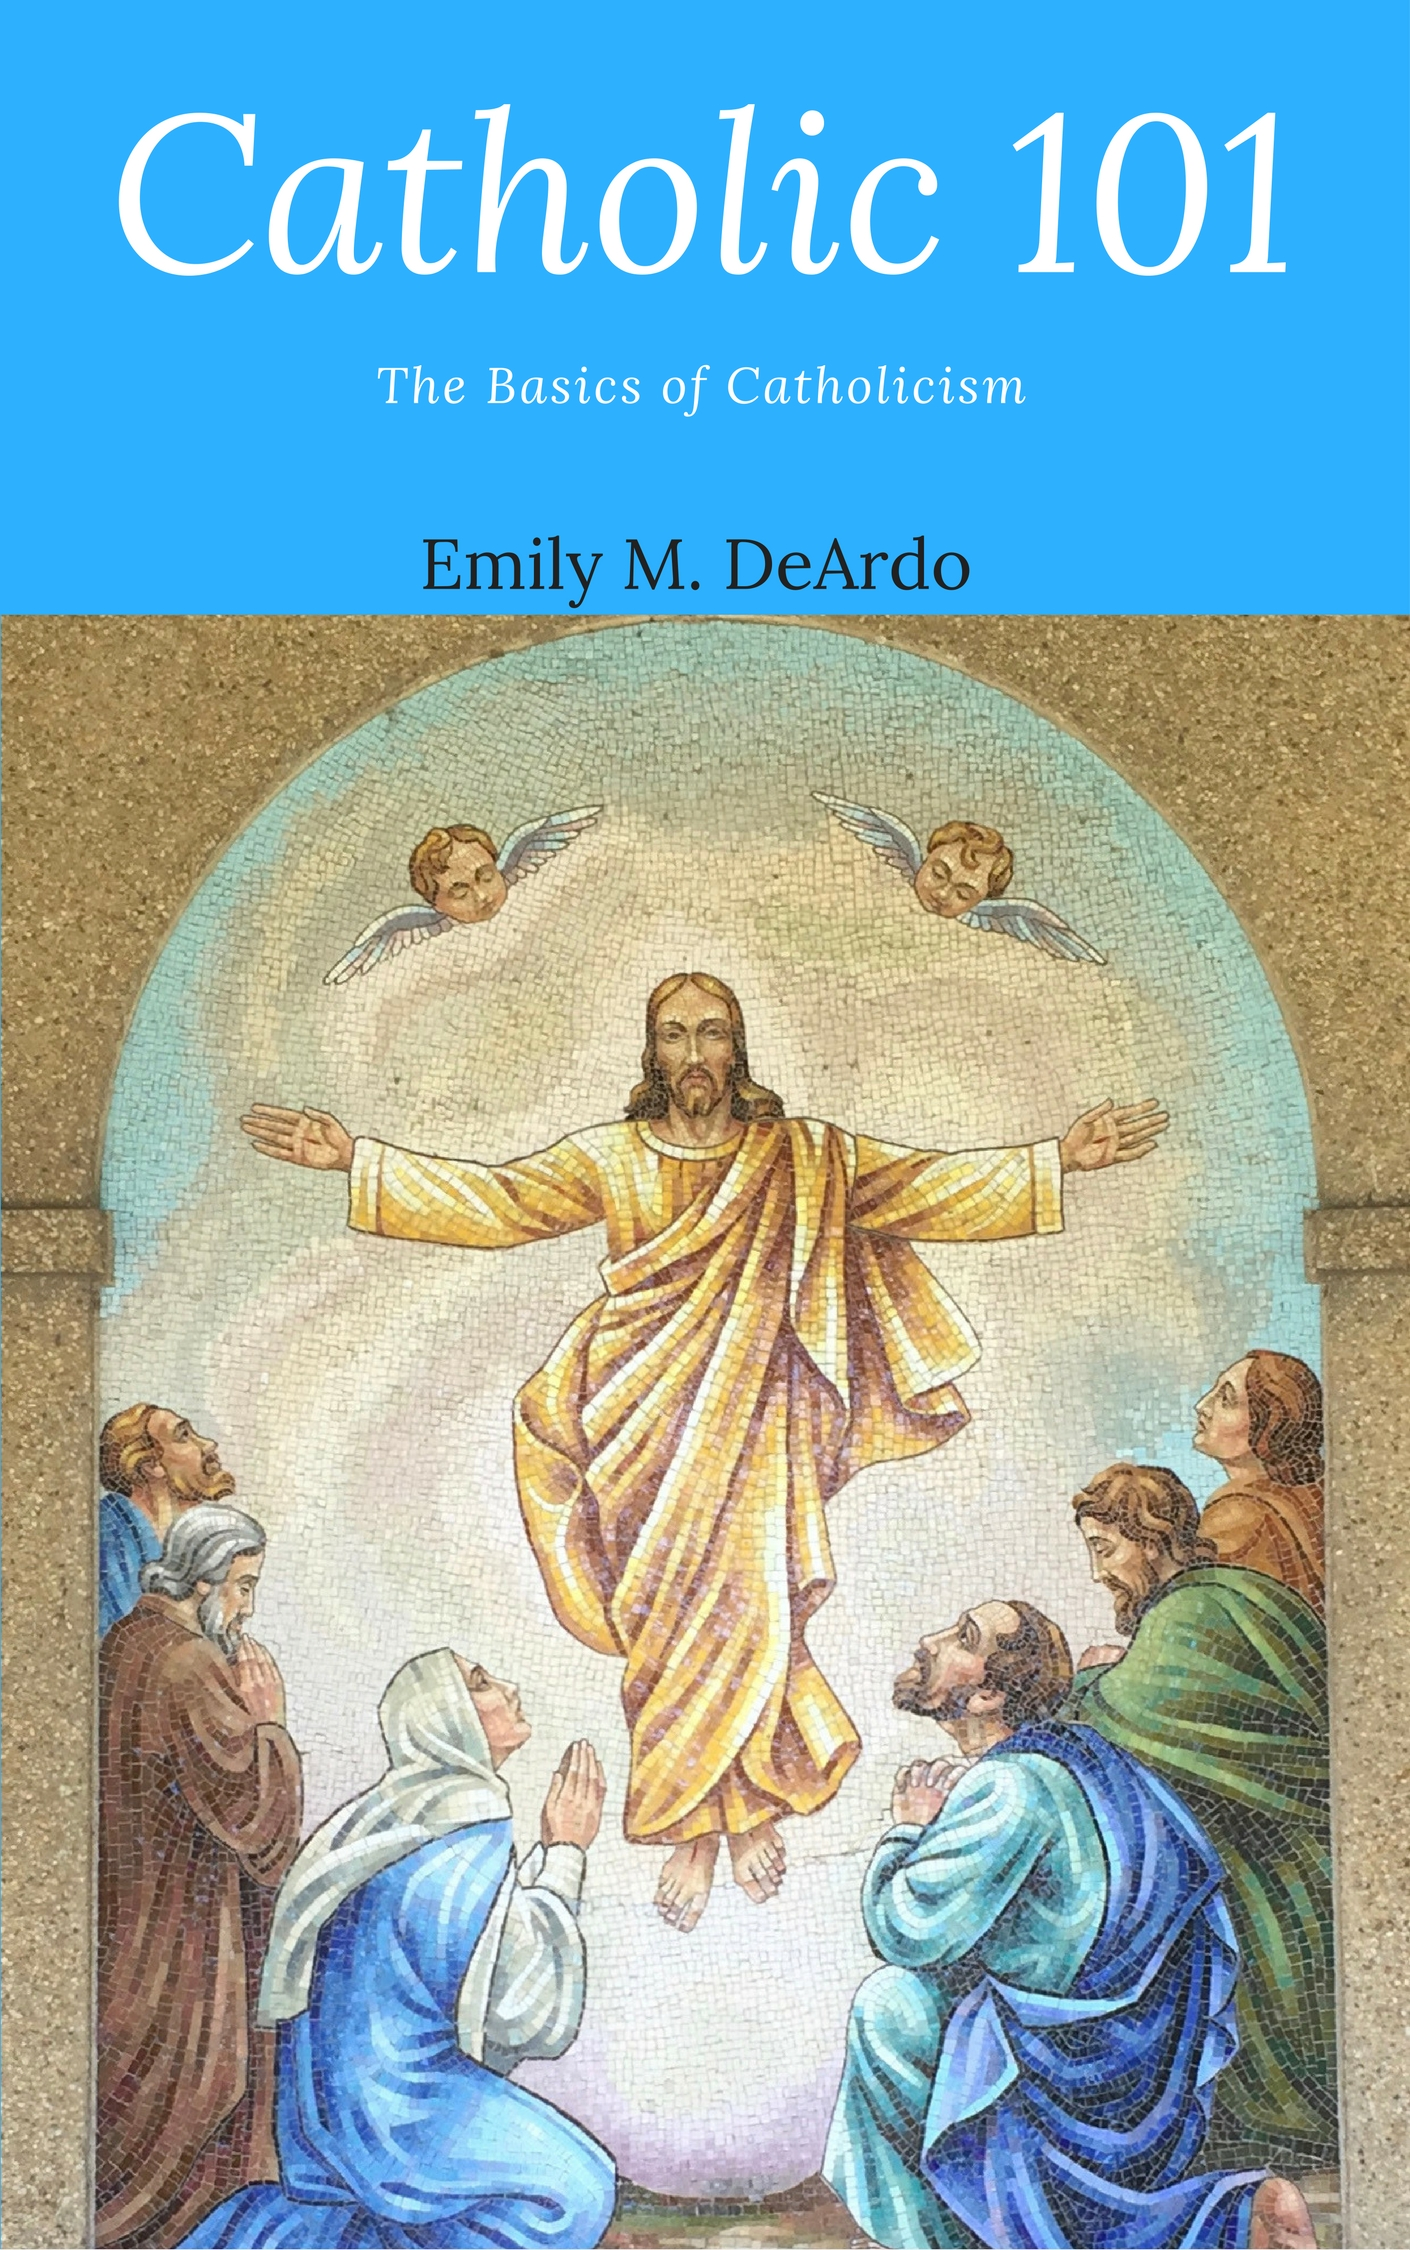 Catholicism, made accessible - 15% off for blog subscribers!